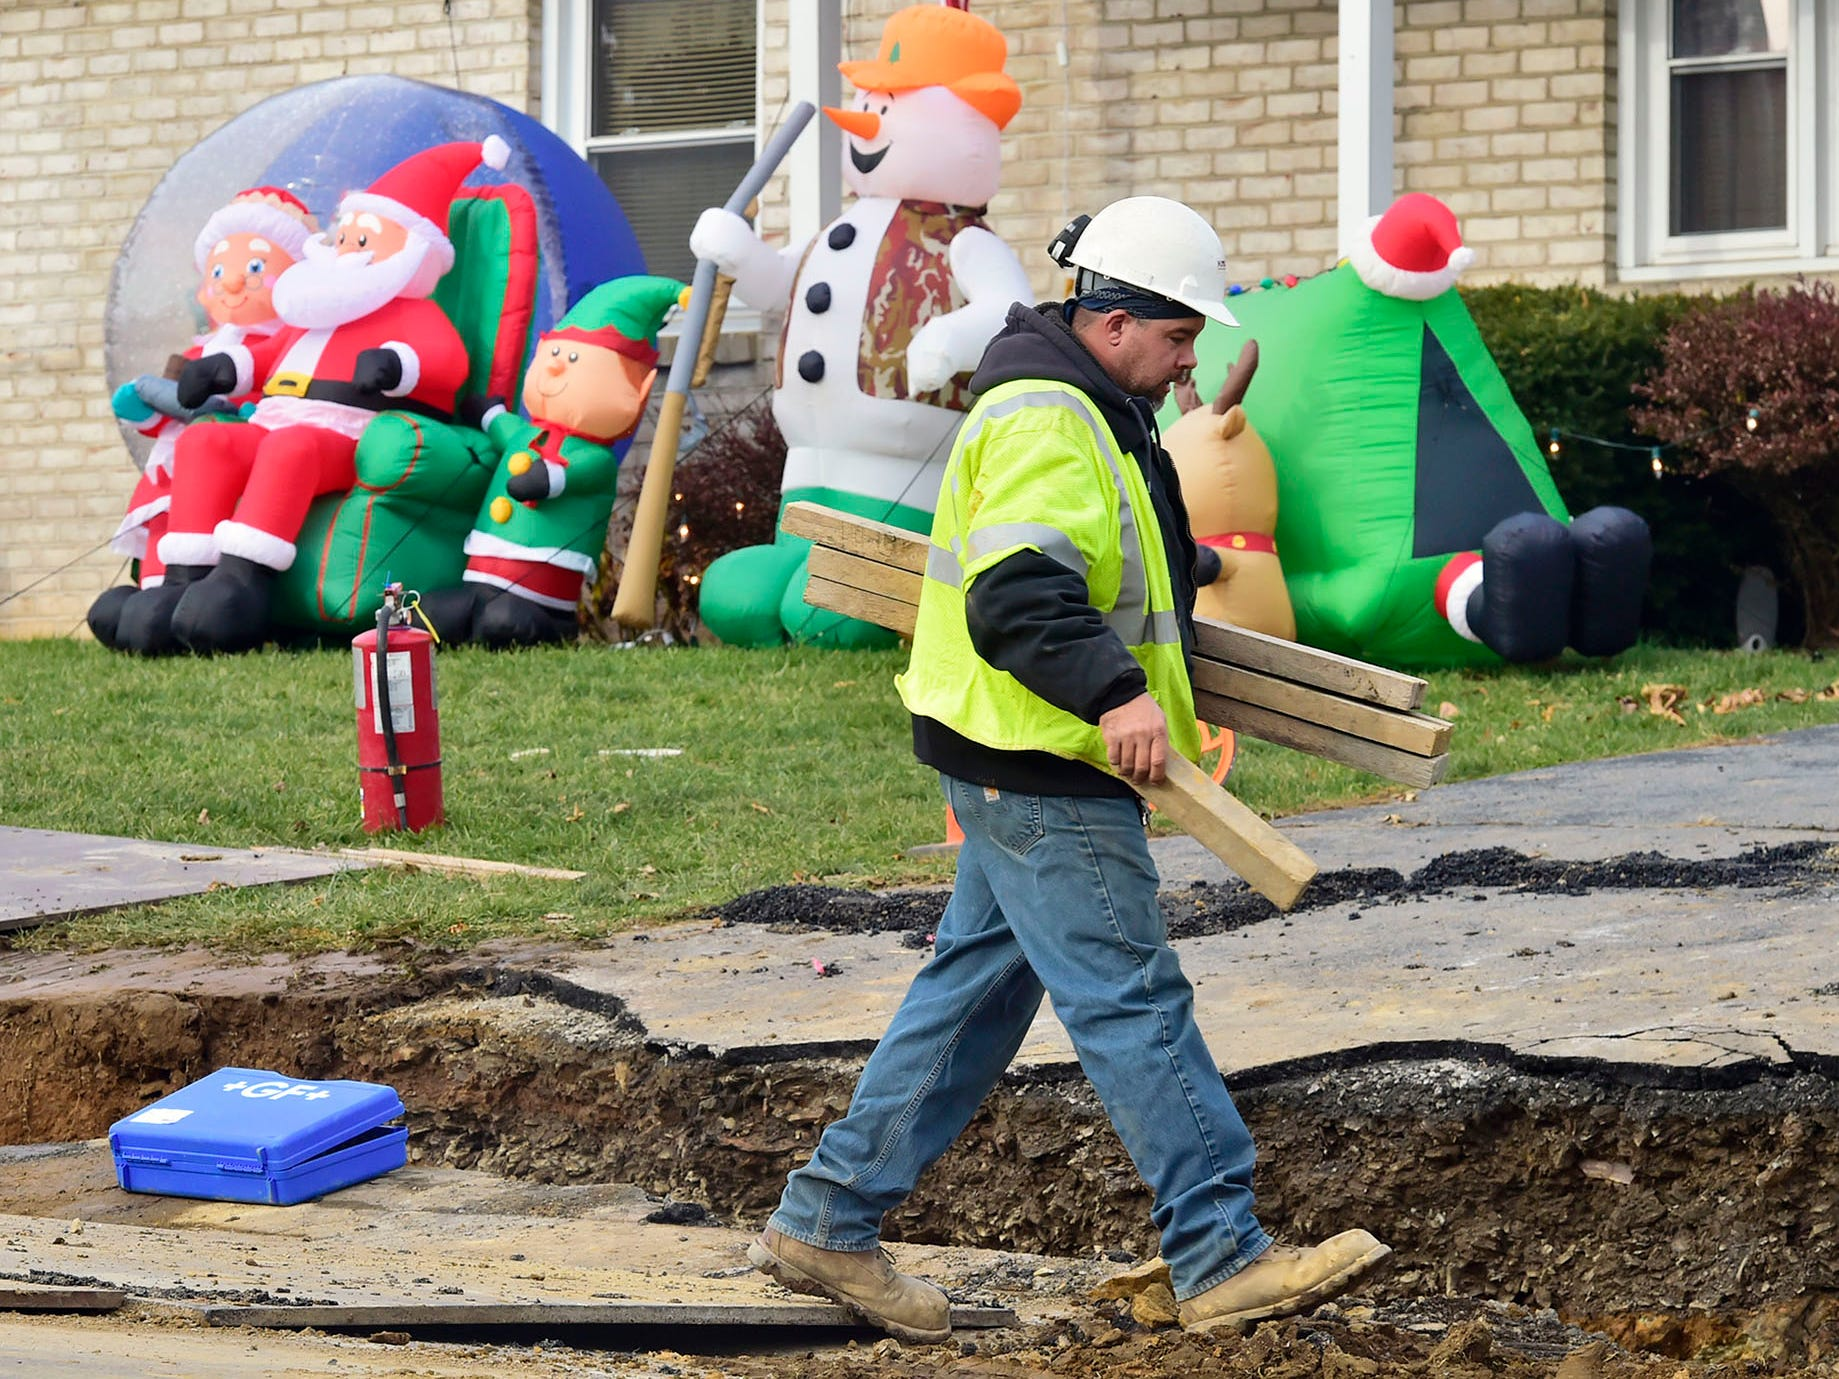 Christmas decorations are seen in the background as Kinsley Construction Co. employees install gas lines along the 2000 block of Main Street in Fayetteville on Wednesday, December 5, 2018.